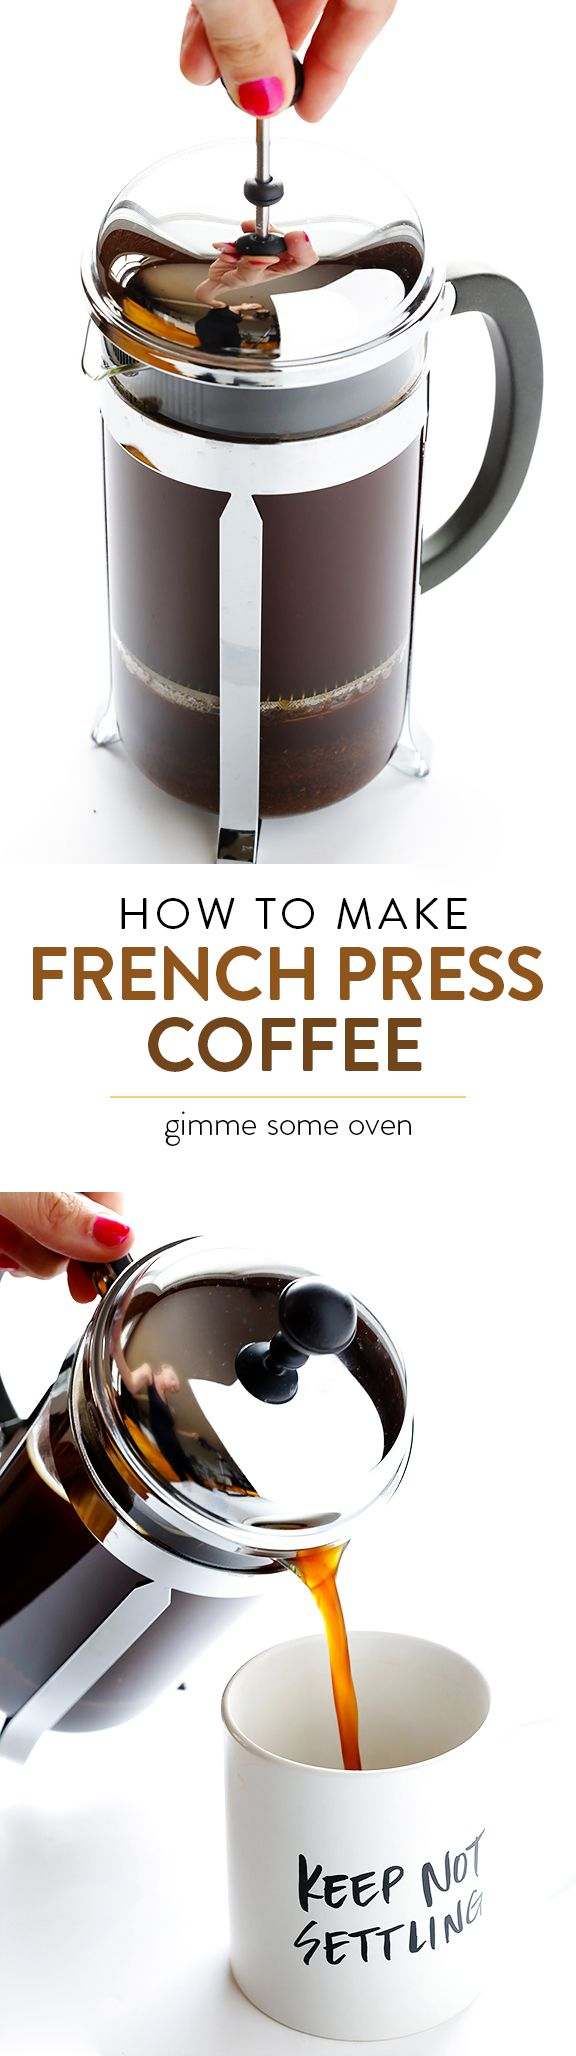 25+ best ideas about French Press on Pinterest Barista machine, Espresso and Grinding coffee beans